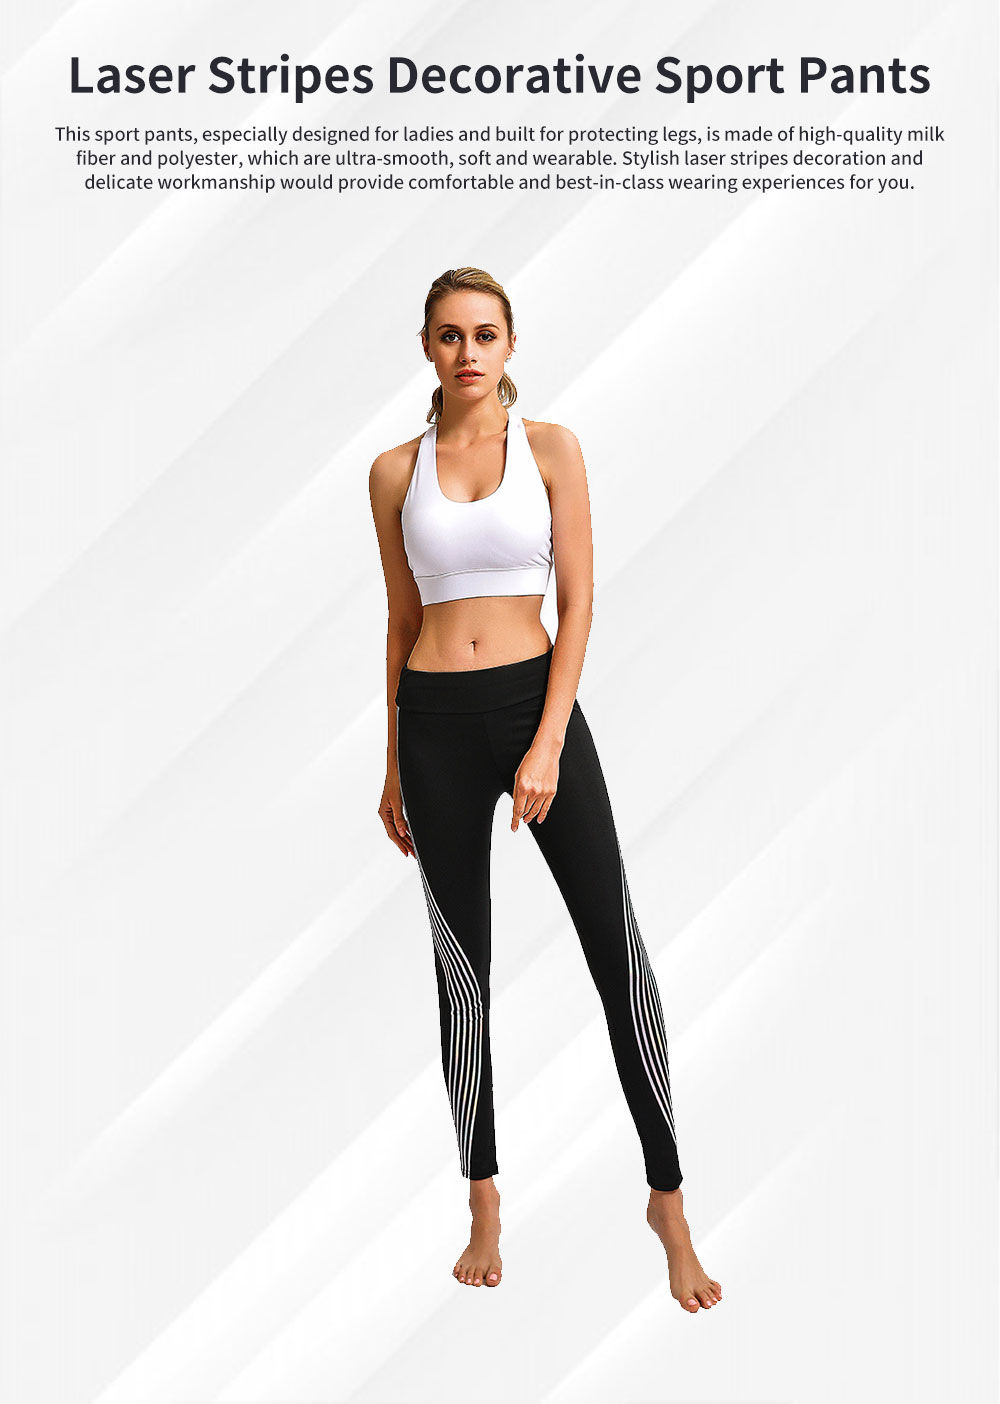 Simple Stylish Laser Stripes Decorative Sport Pants for Ladies Smooth Yoga Dance Exercise Fitness Pants 0